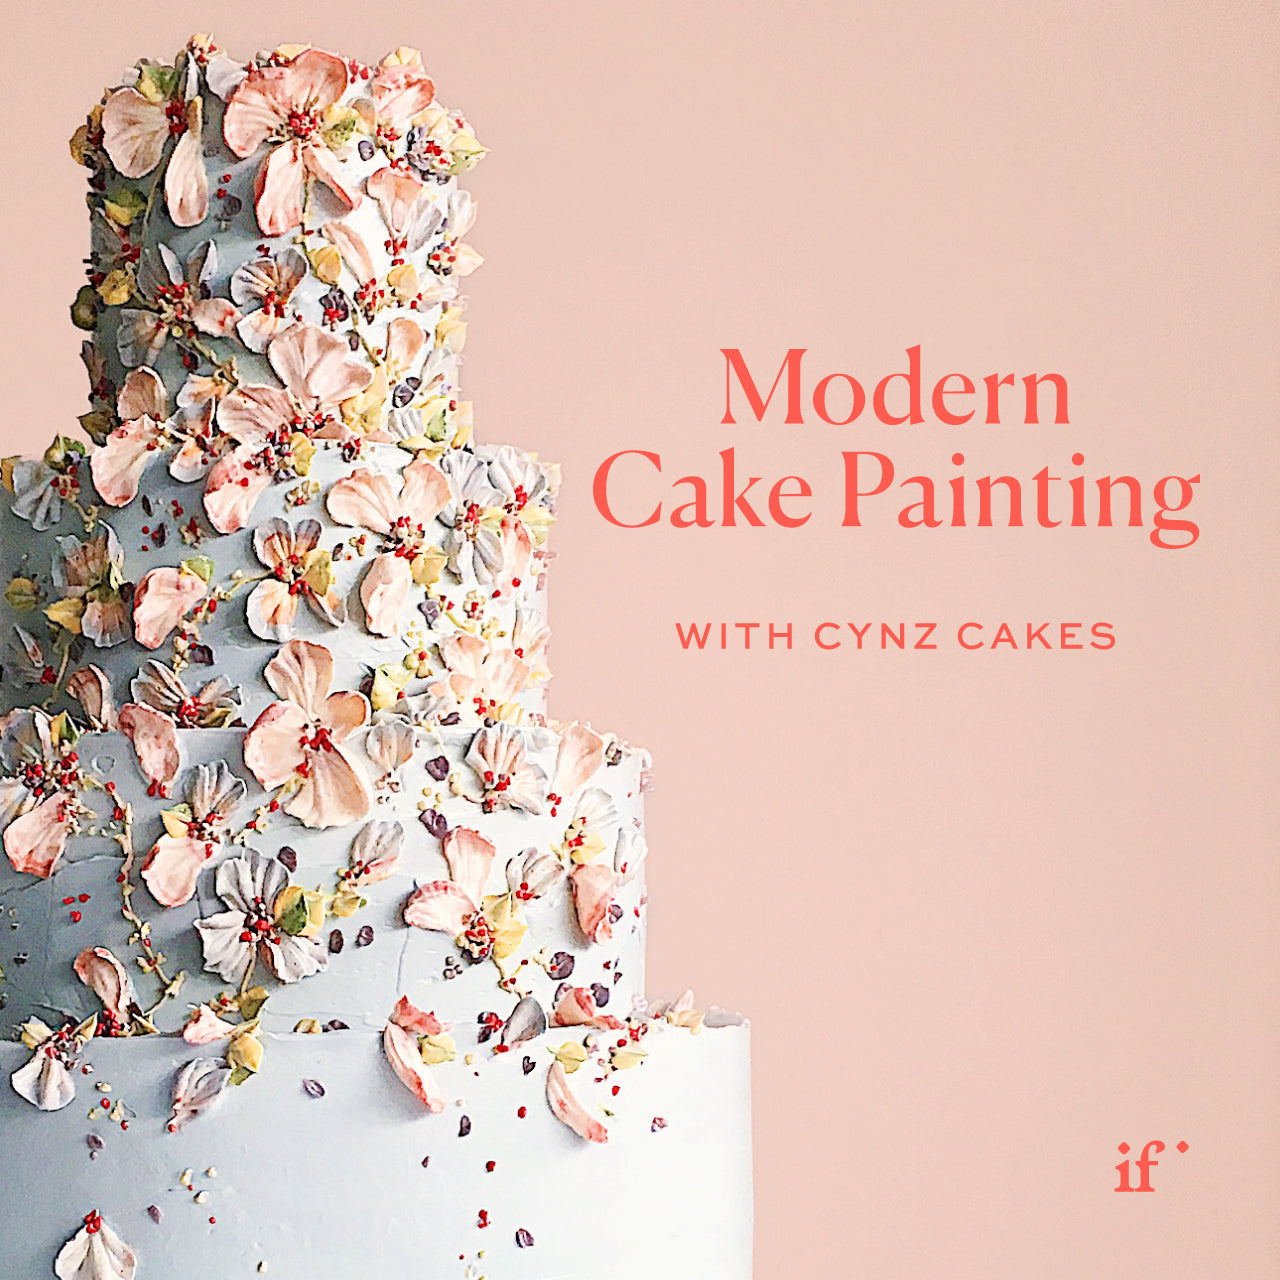 Sale Payment Plan: Modern Cake Painting with Cynz Cakes- 6 Payments of $99